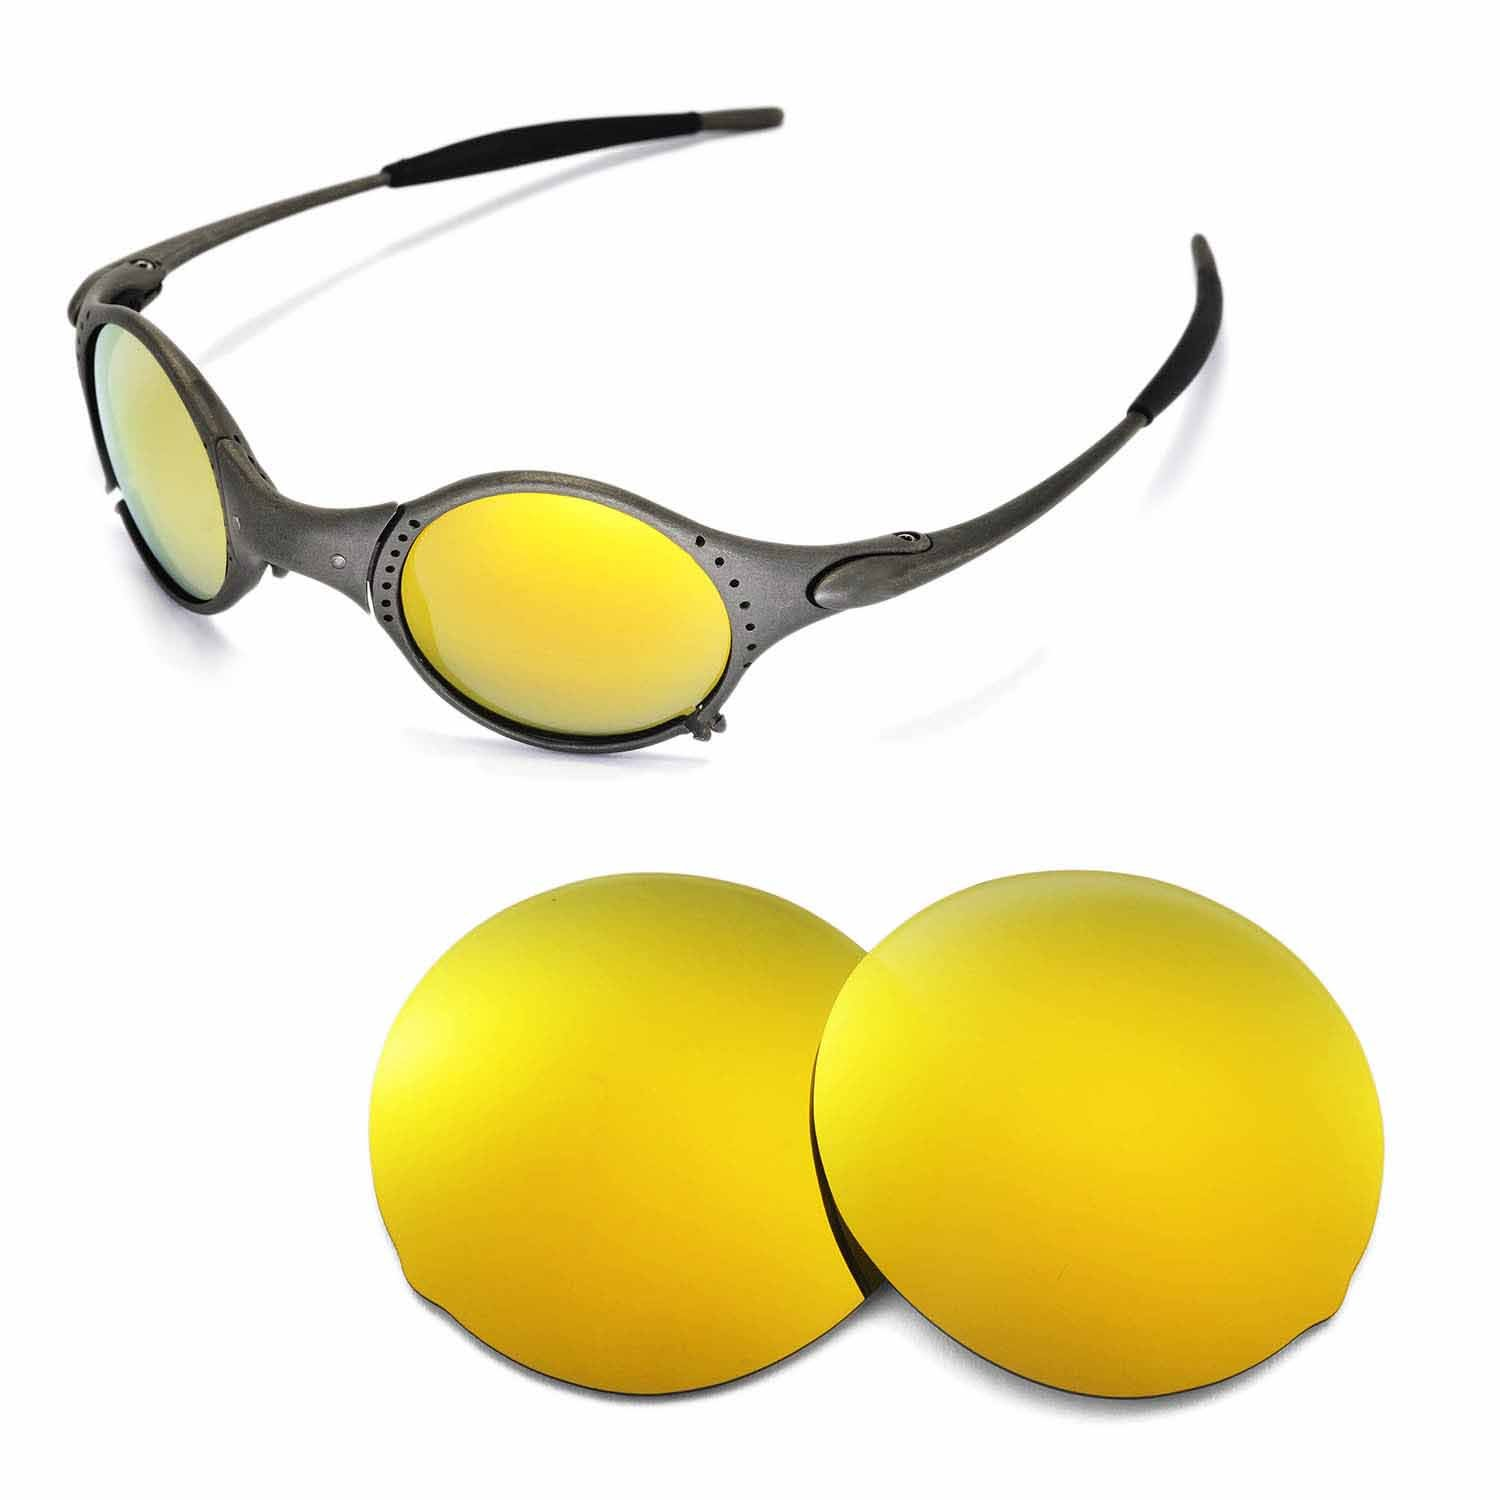 0ff14dfa2d7 Walleva Replacement Lenses for Oakley Mars Sunglasses - Multiple Options  (24K Gold Mirror Coated - Polarized)  Amazon.co.uk  Clothing